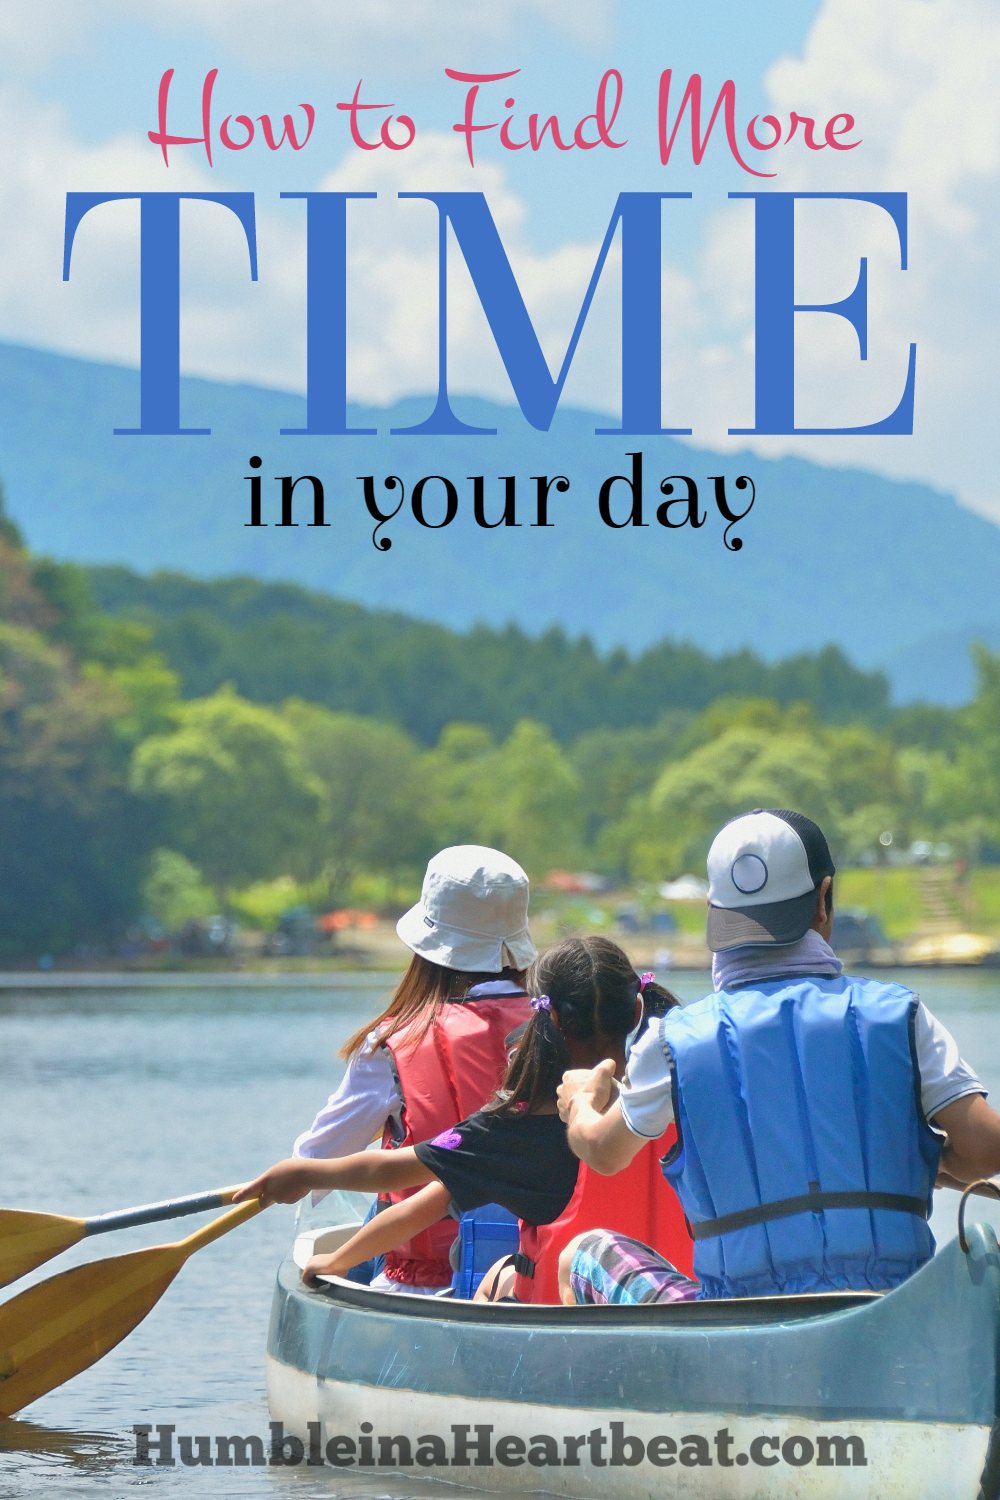 Do you often complain about how little time you have to do the things that really matter? Finding more time in your day can be a huge game-changer, and here's how you can do that.